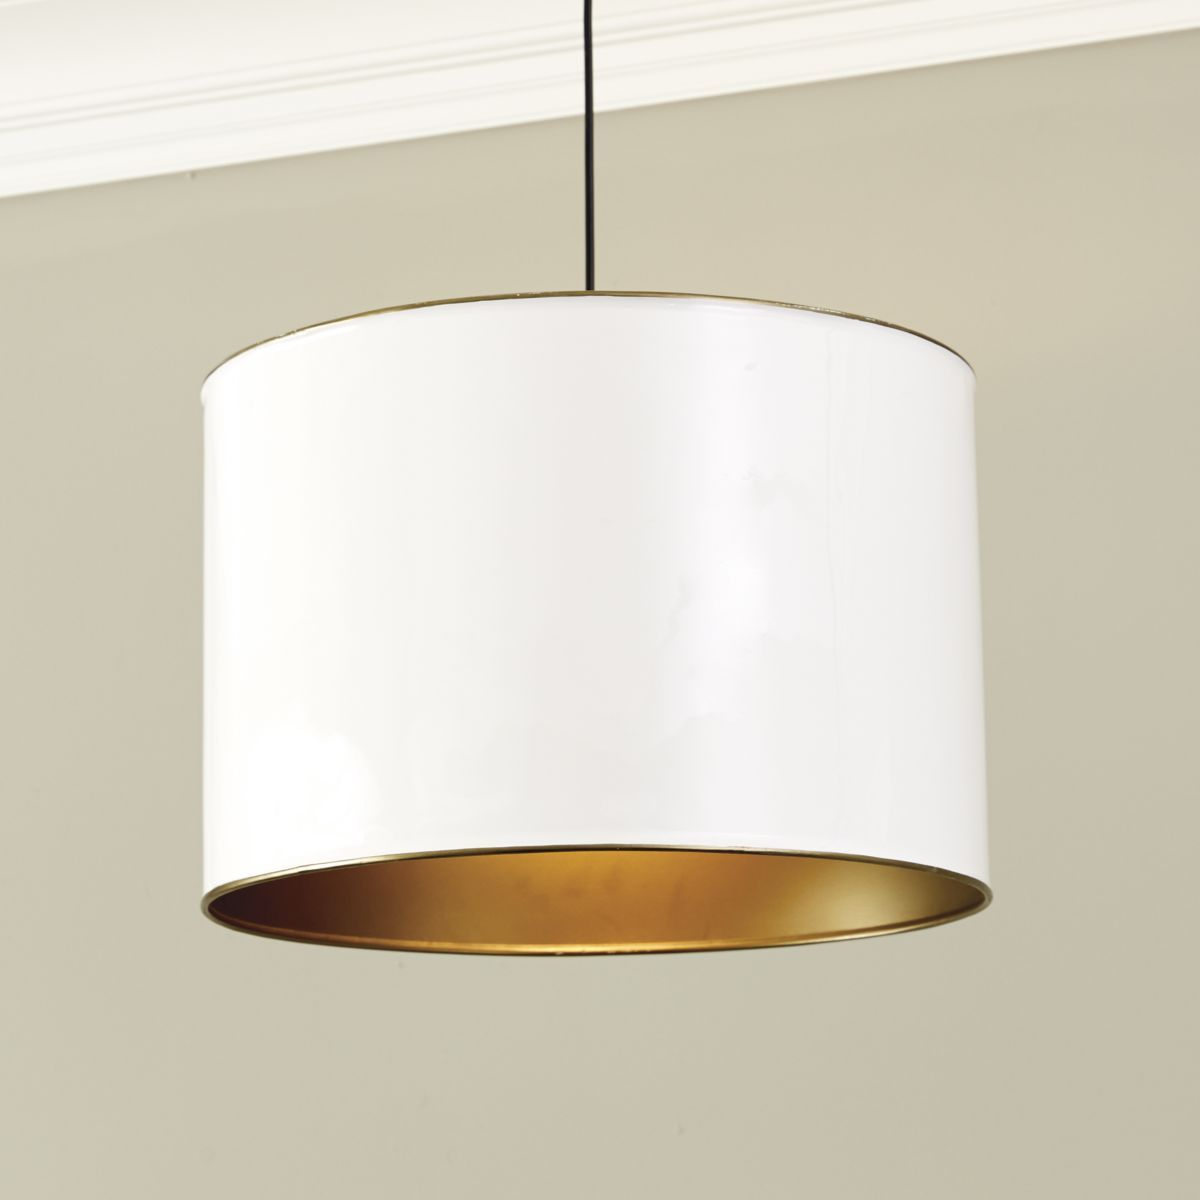 Lilly Drum Pendant 12x18 Ballards | Lighting | Pinterest ...